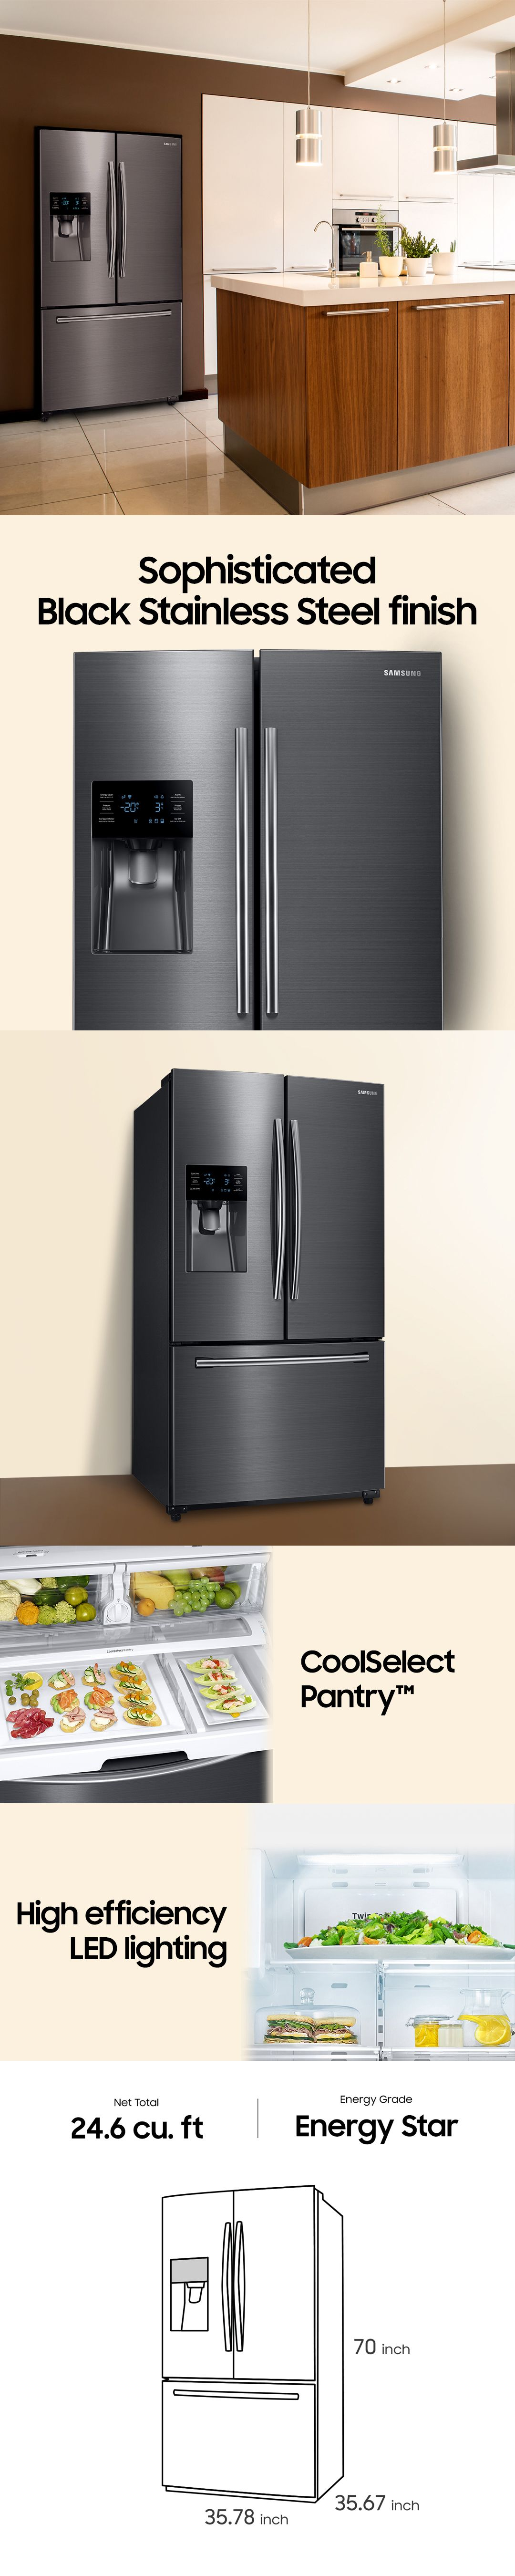 These Days Kitchen Appliances Not Only Need To Work Right They Need To Look Right Too So A Sophisticated Black Stainless Co Kitchen Interior Design In 2019